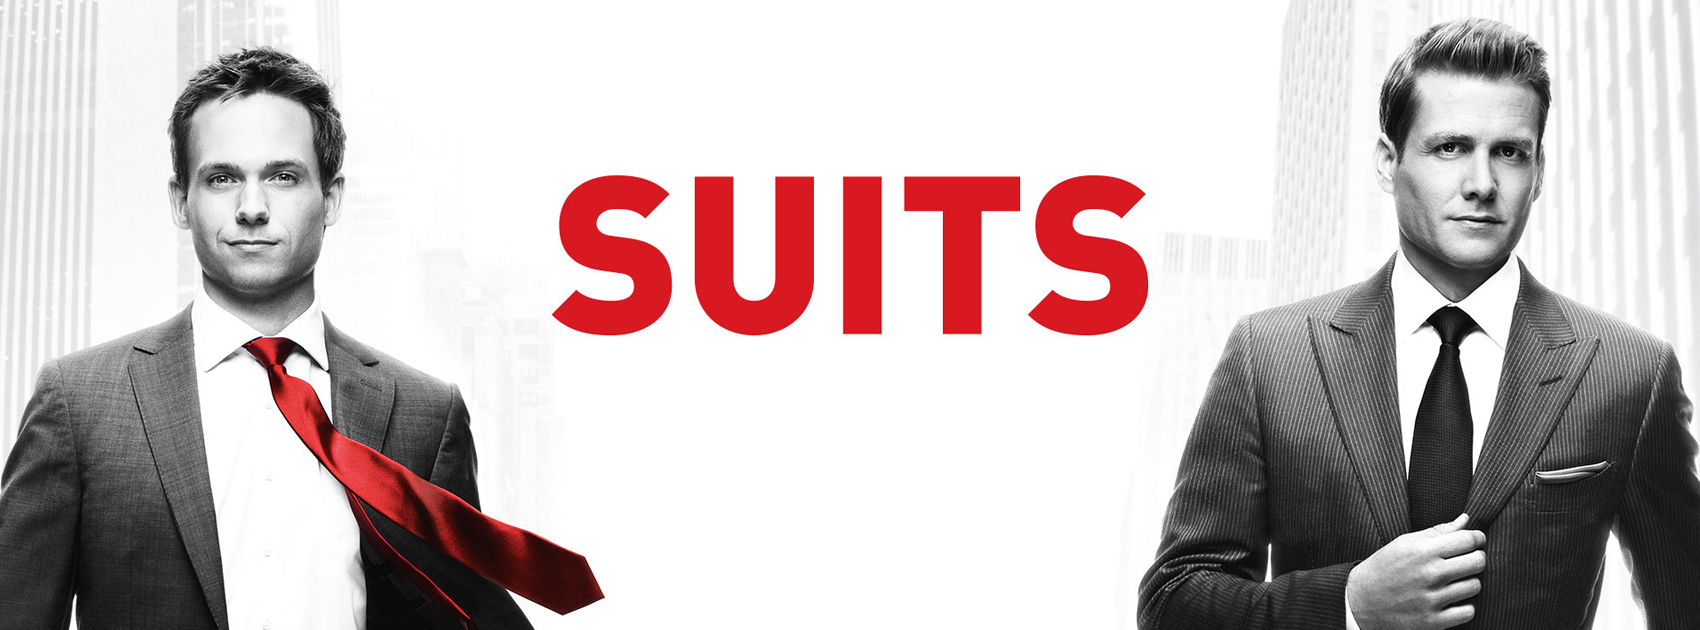 5 Things That Entrepreneurs From Suits,Startup Stories,Startup News India,Inspiring Startup Story,Entrepreneurs Suits,Billionaire Businessman,Famous Drama Series Suits,Suits Lawyer Harvey Specter,Lessons From Suits,Entrepreneurs Stories 2018,Learn Entrepreneurs From Suits